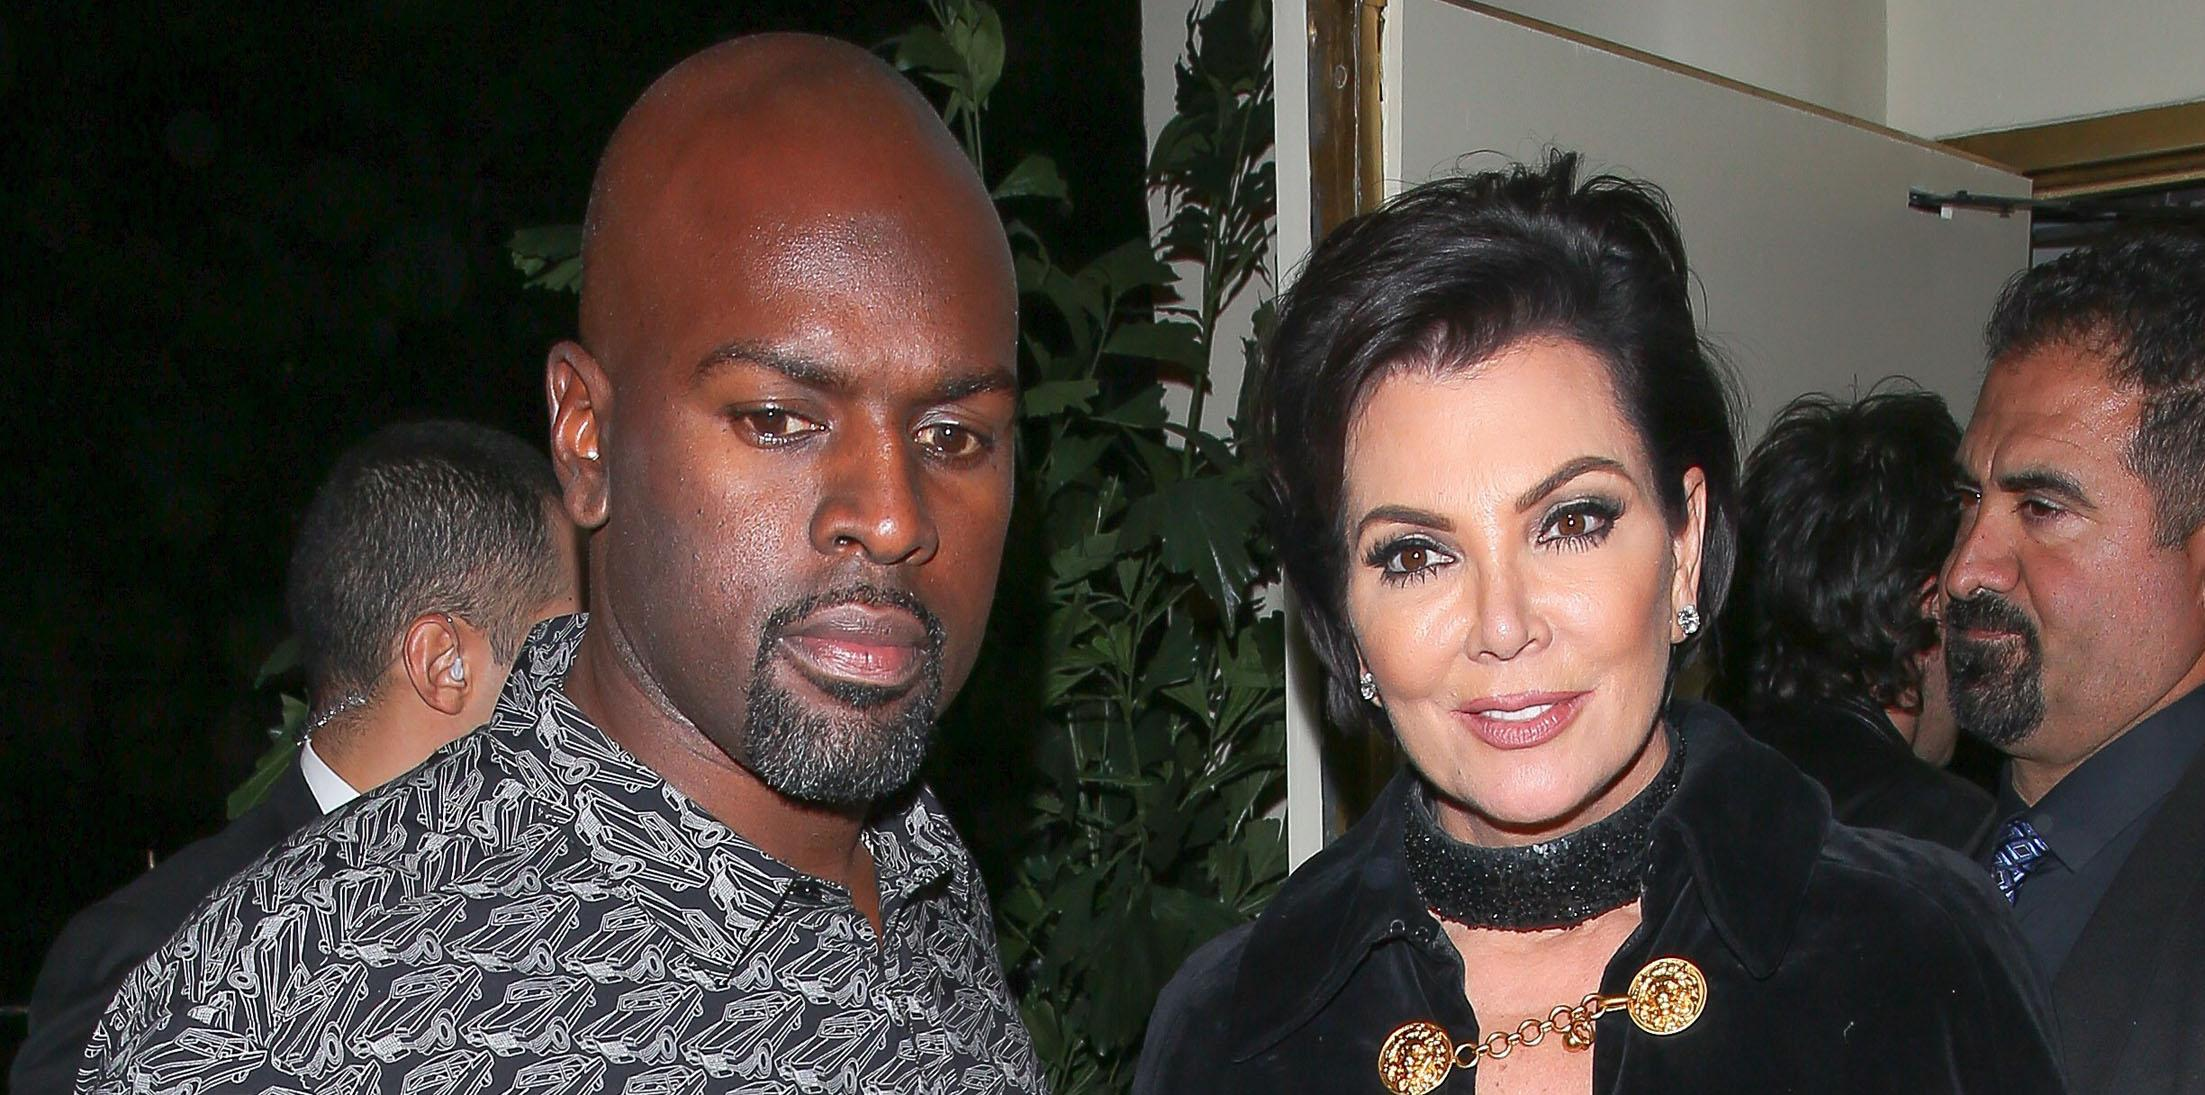 Corey Gamble and Kris Jenner wrap up a successful night at Kendall's 21st Birthday